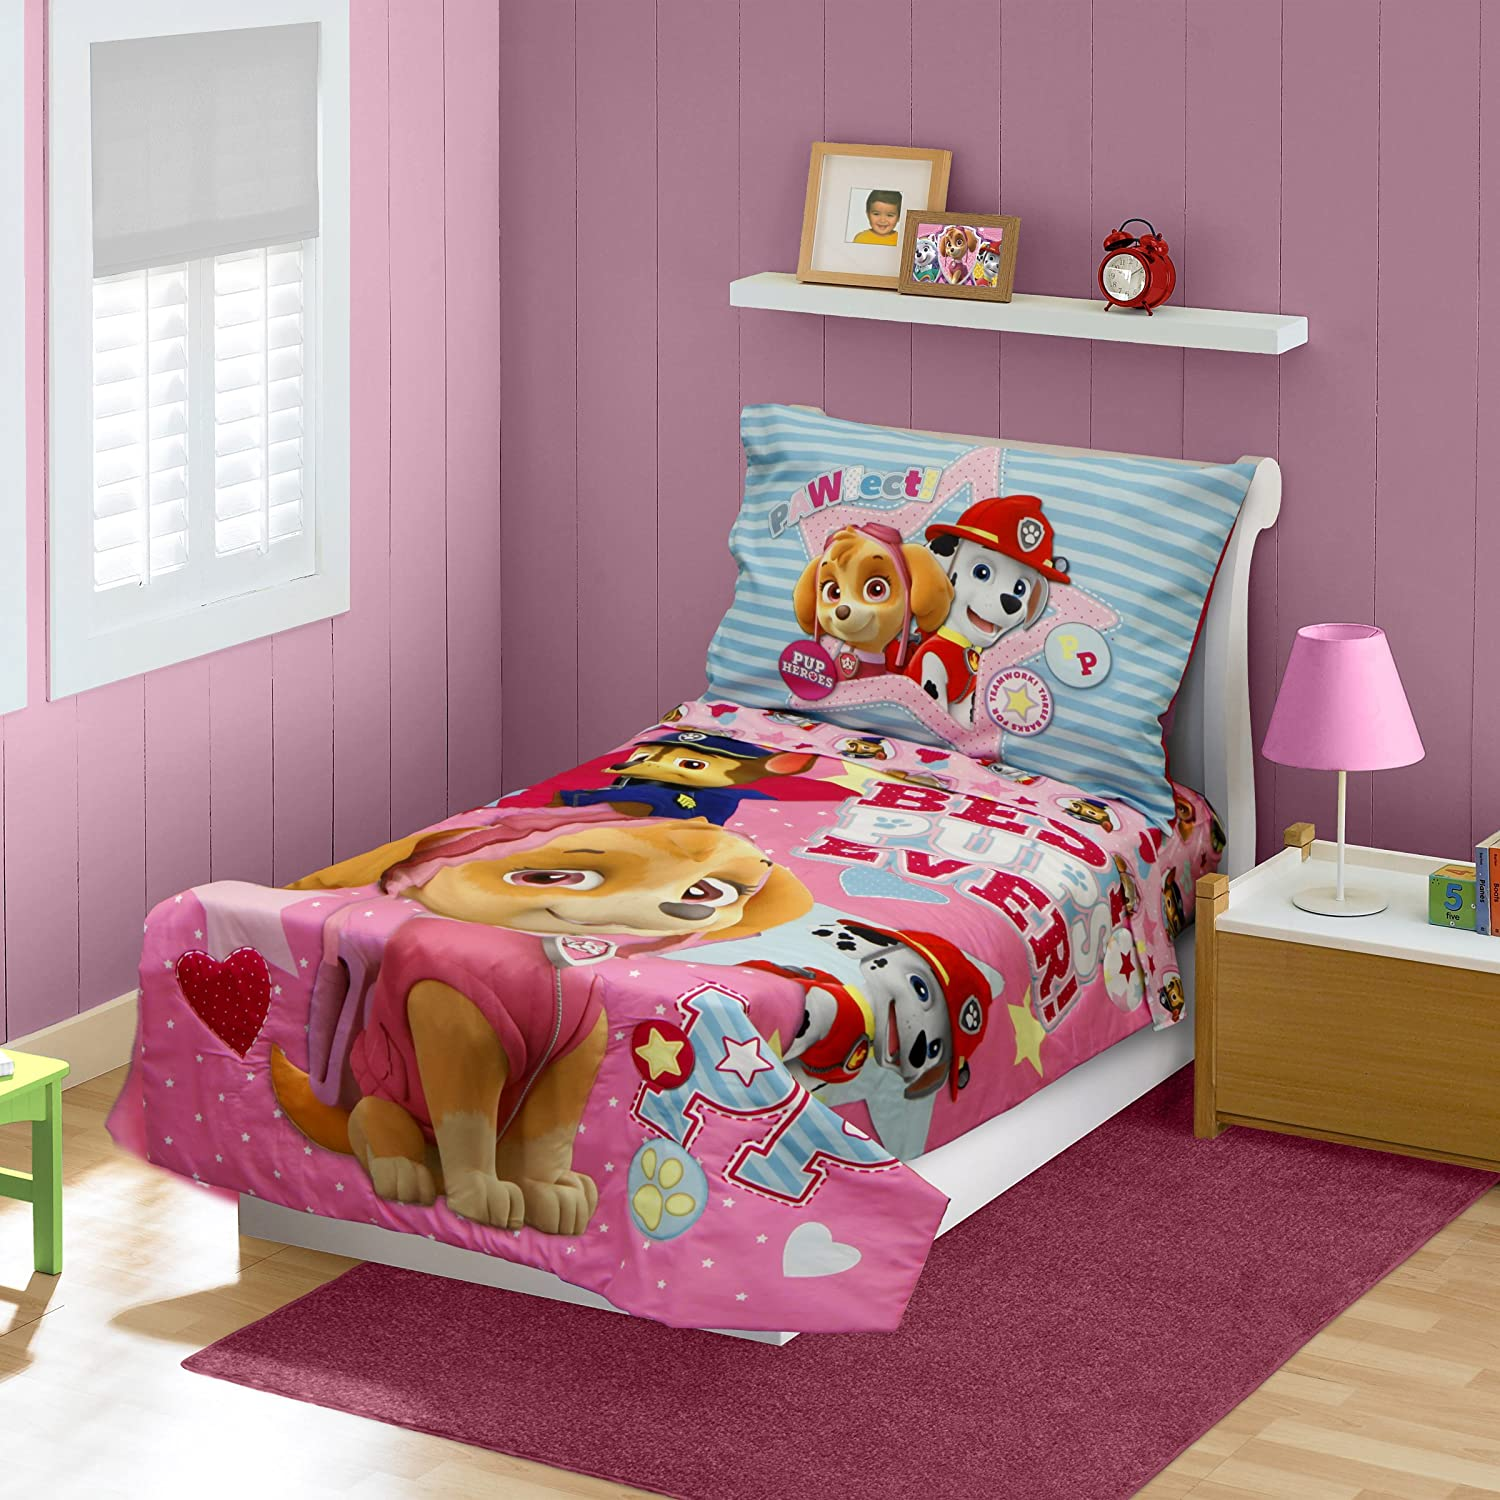 toddler bedding sets sale u2013 ease bedding with style